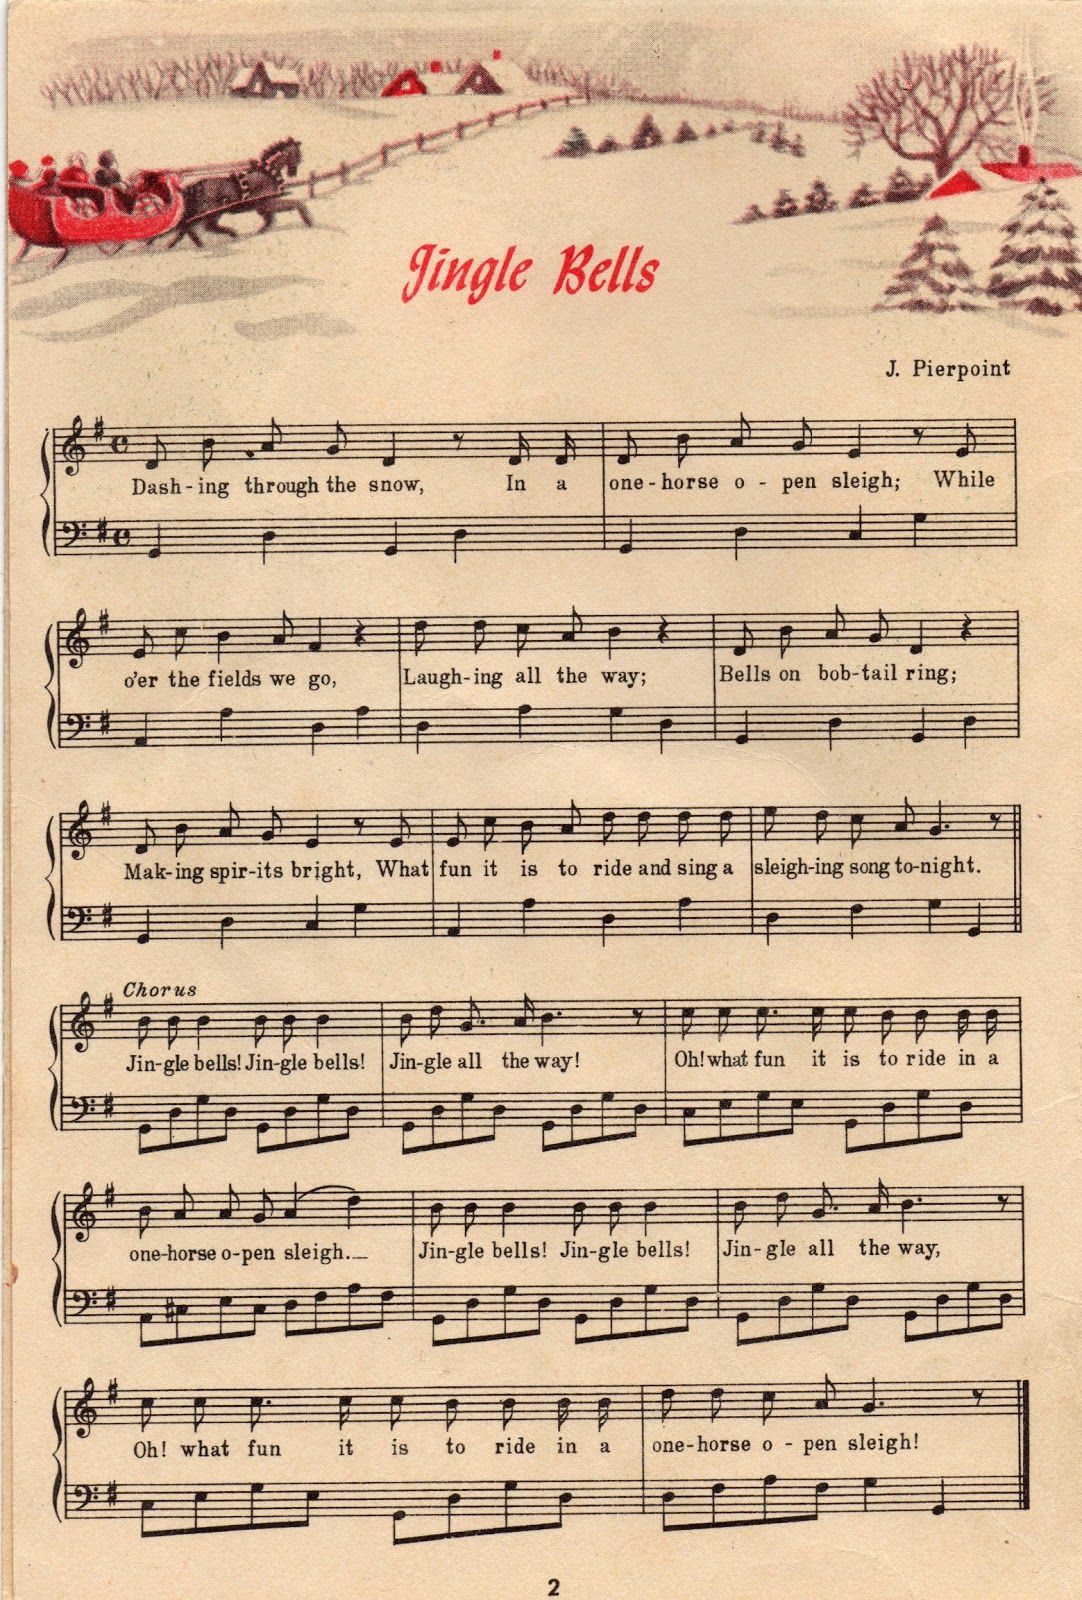 25+ Free Printable Vintage Christmas Sheet Music | Christmas Ideas - Christmas Carols Sheet Music Free Printable